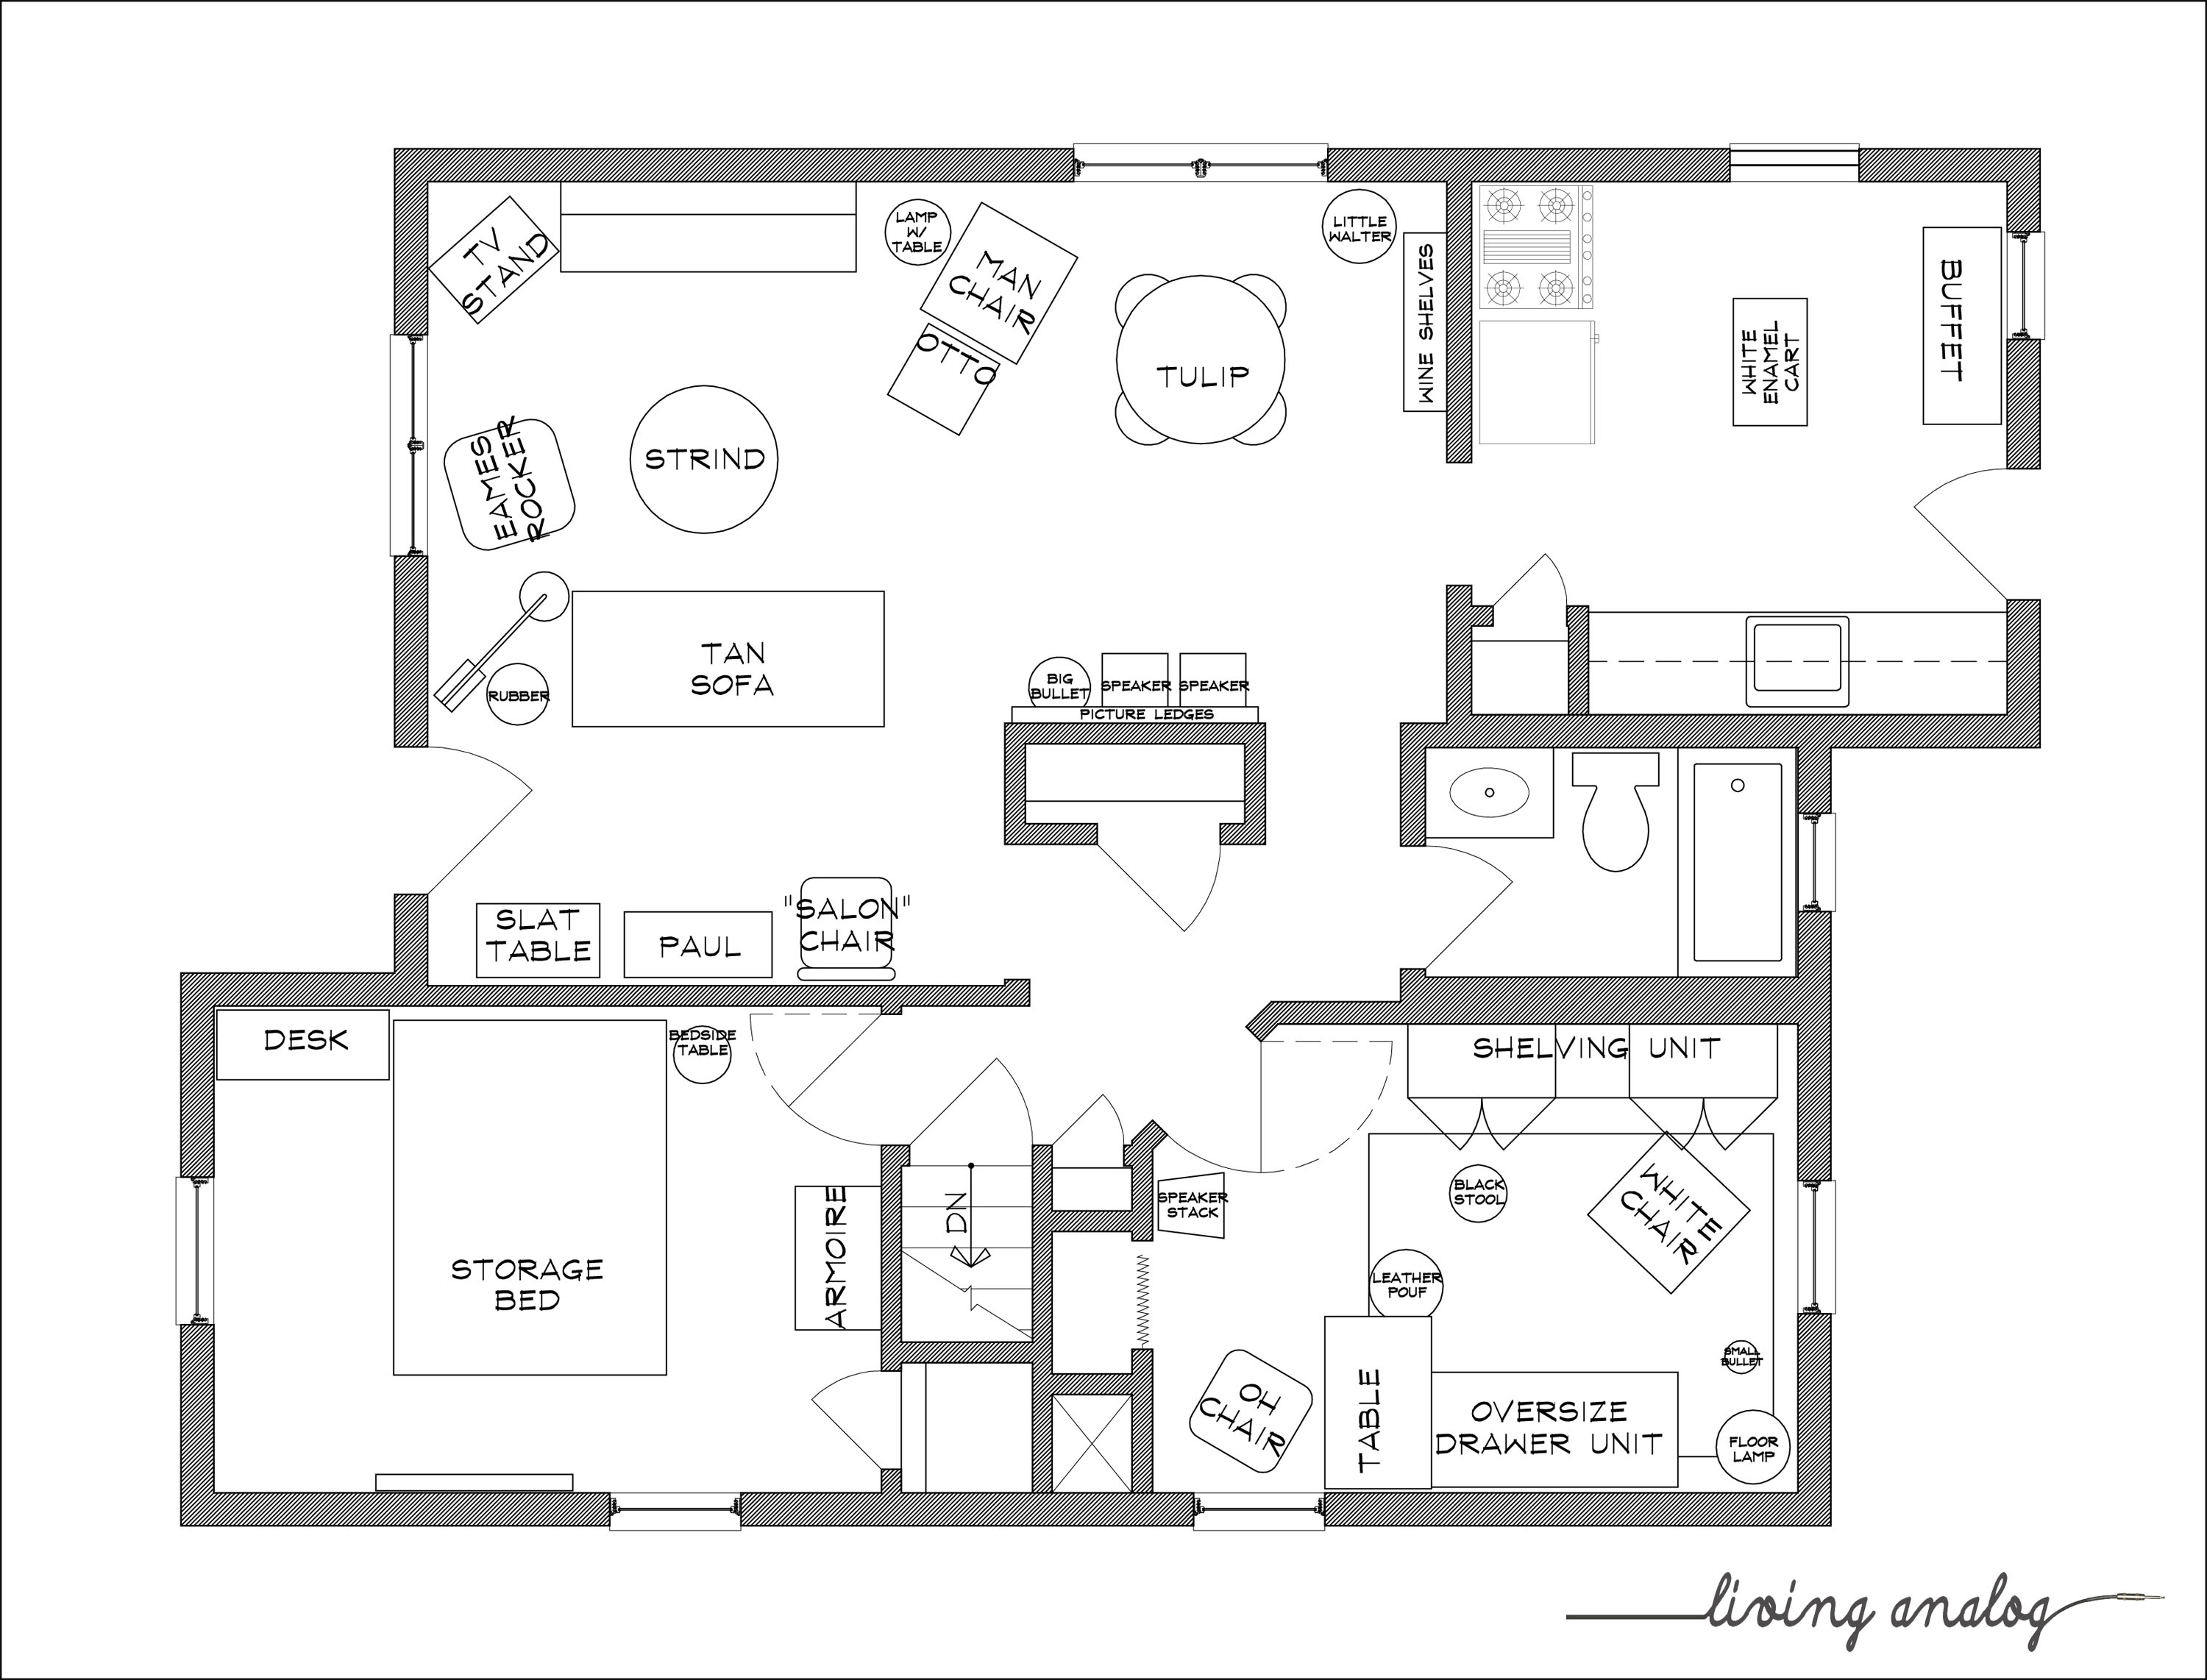 Merchandising €�techniques That Work moreover Lounge Desk Allotment Dorm Hornby Reception Flat Party Paving Wall Perfect Production Planners Floorplan Architecture One Bedroom Floor Plan Of Suite Room Layout Awesome Plan moreover 36x48 Barn With Loft Apartment besides Floor Plan Friday Kids At The Back Parents At The Front furthermore Floor plan. on furniture showroom interior layouts